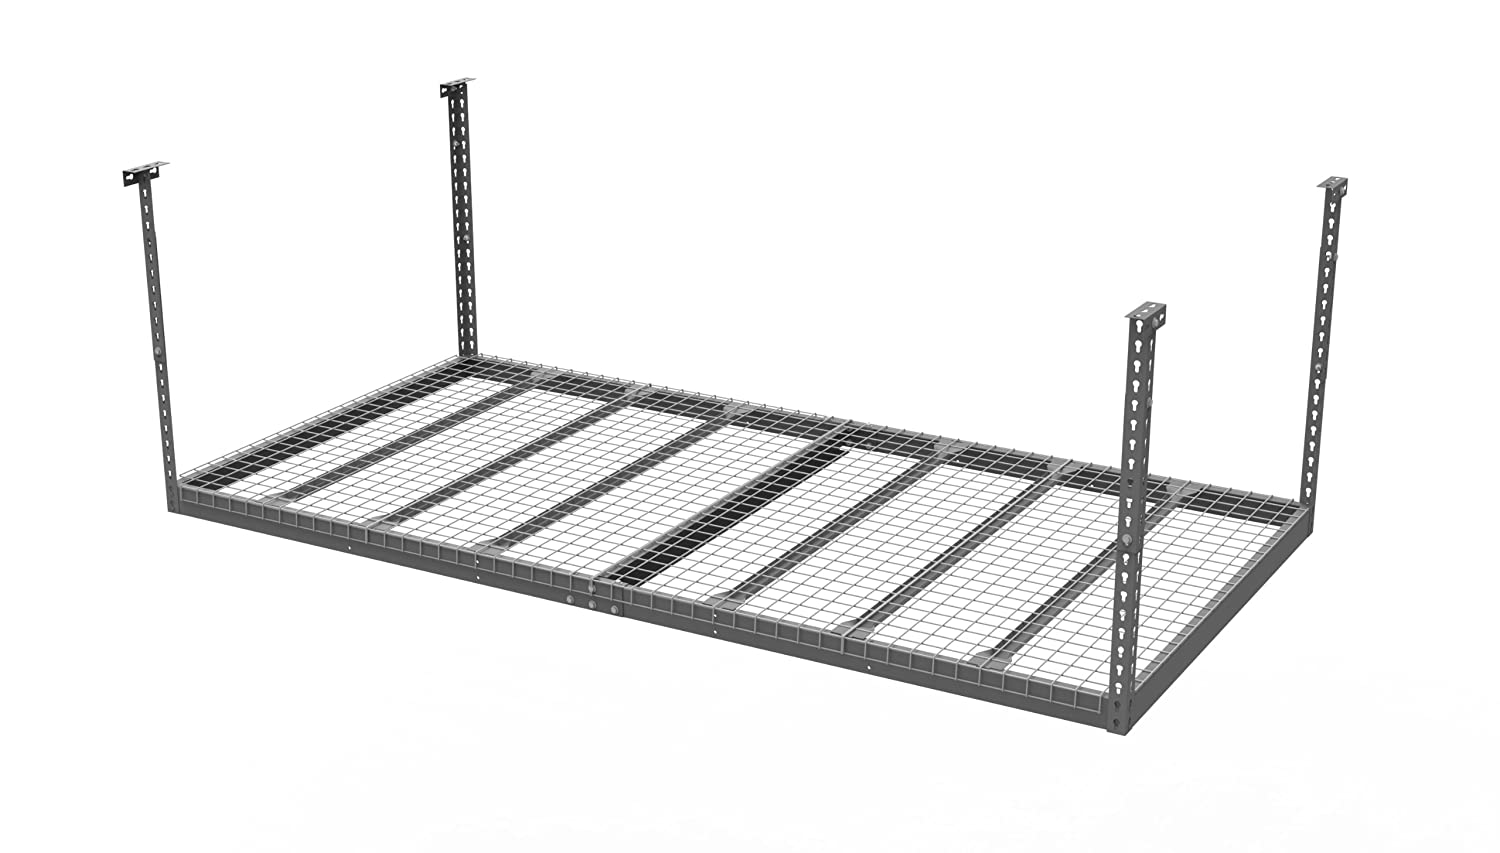 Amazon.com: NewAge Products 40151 4 Feet By 8 Feet Ceiling Mount Garage  Storage Rack, Gray: Home Improvement